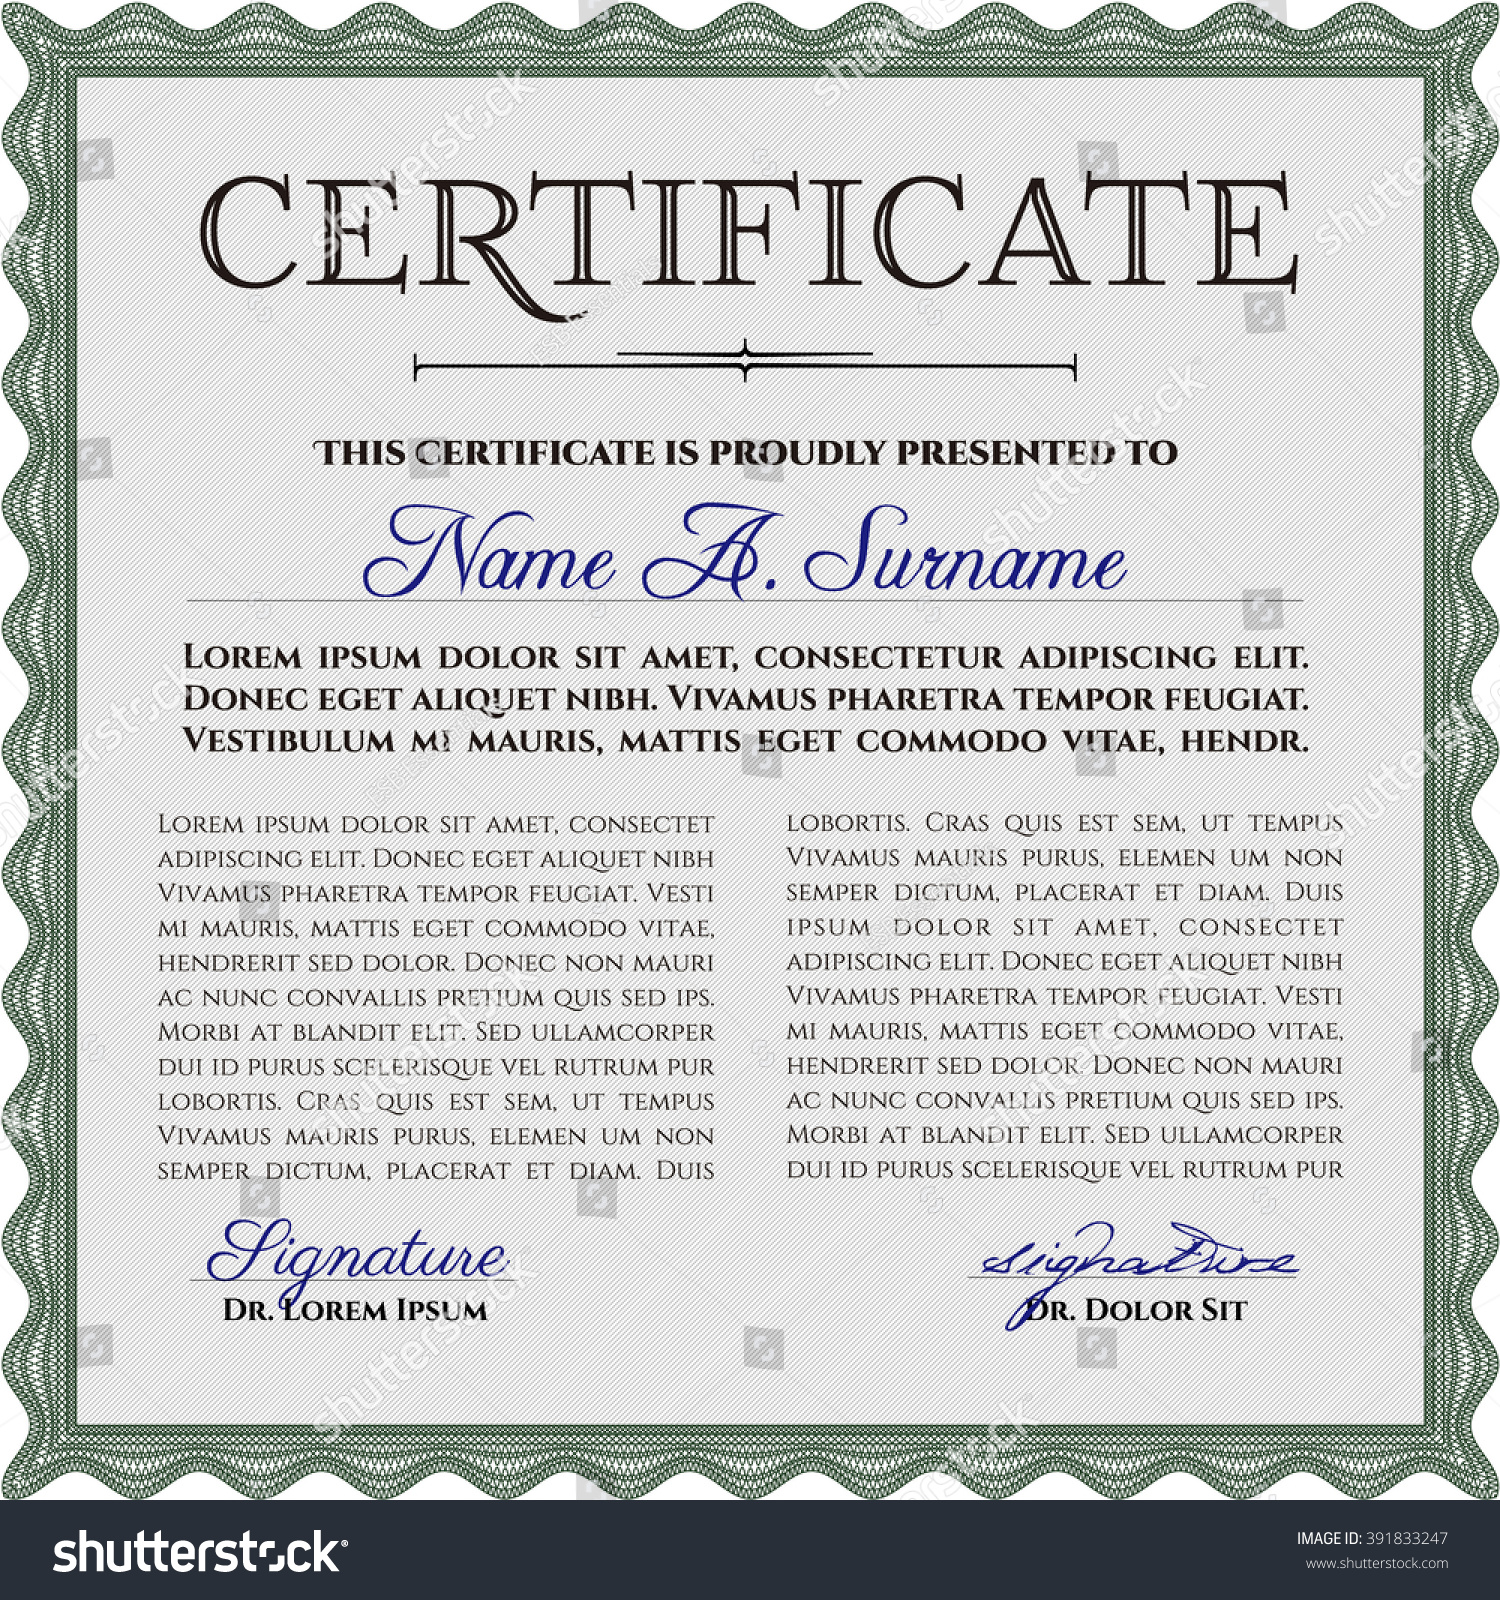 Certificate knighthood template image collections certificate pretty pdf gift certificate template images professional resume certificate of knighthood template choice image certificate design yelopaper Image collections